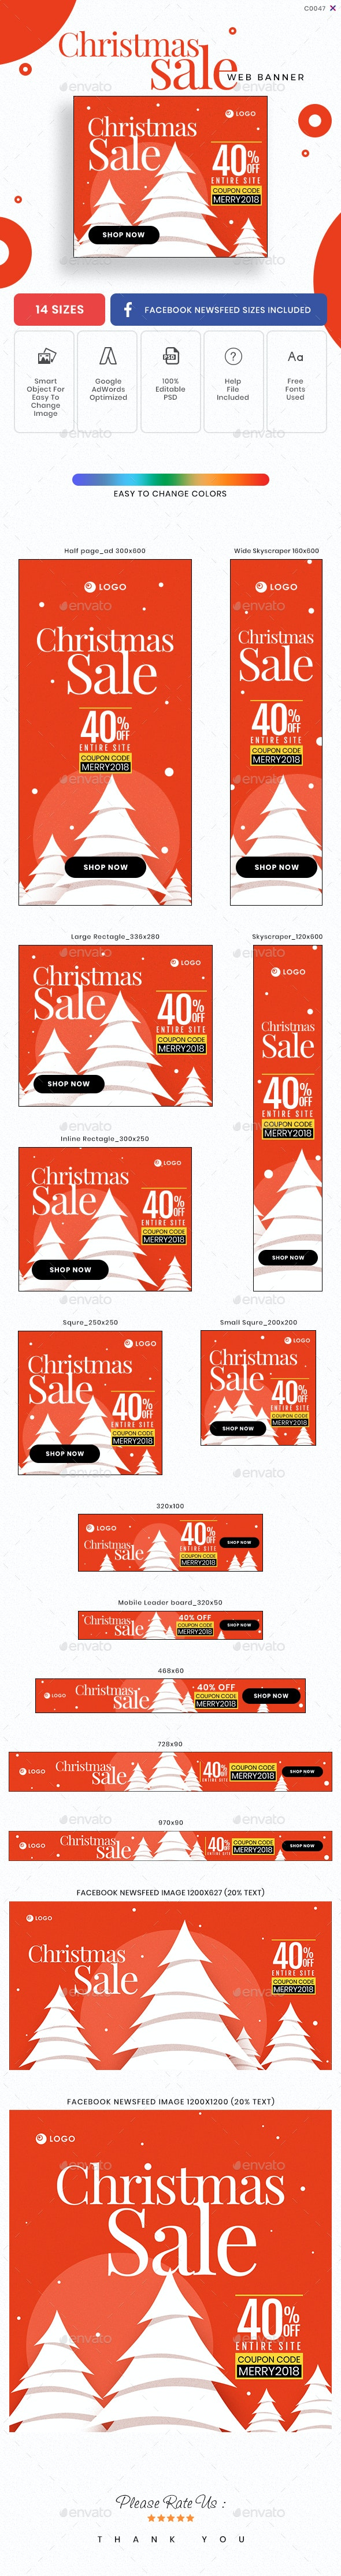 Christmas Sale Banner Set - Banners & Ads Web Elements